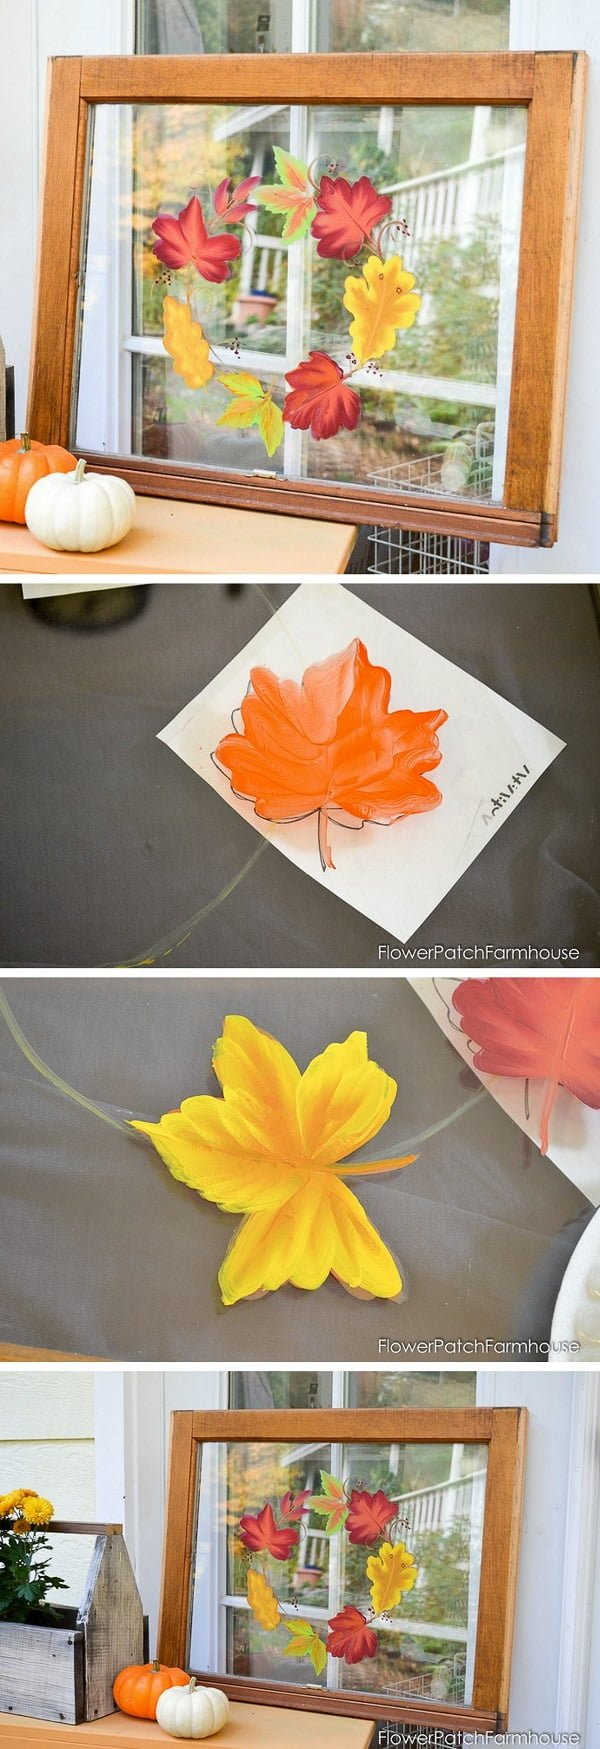 Check out the tutorial how to make a DIY decorative autumn leaves sign from an old window